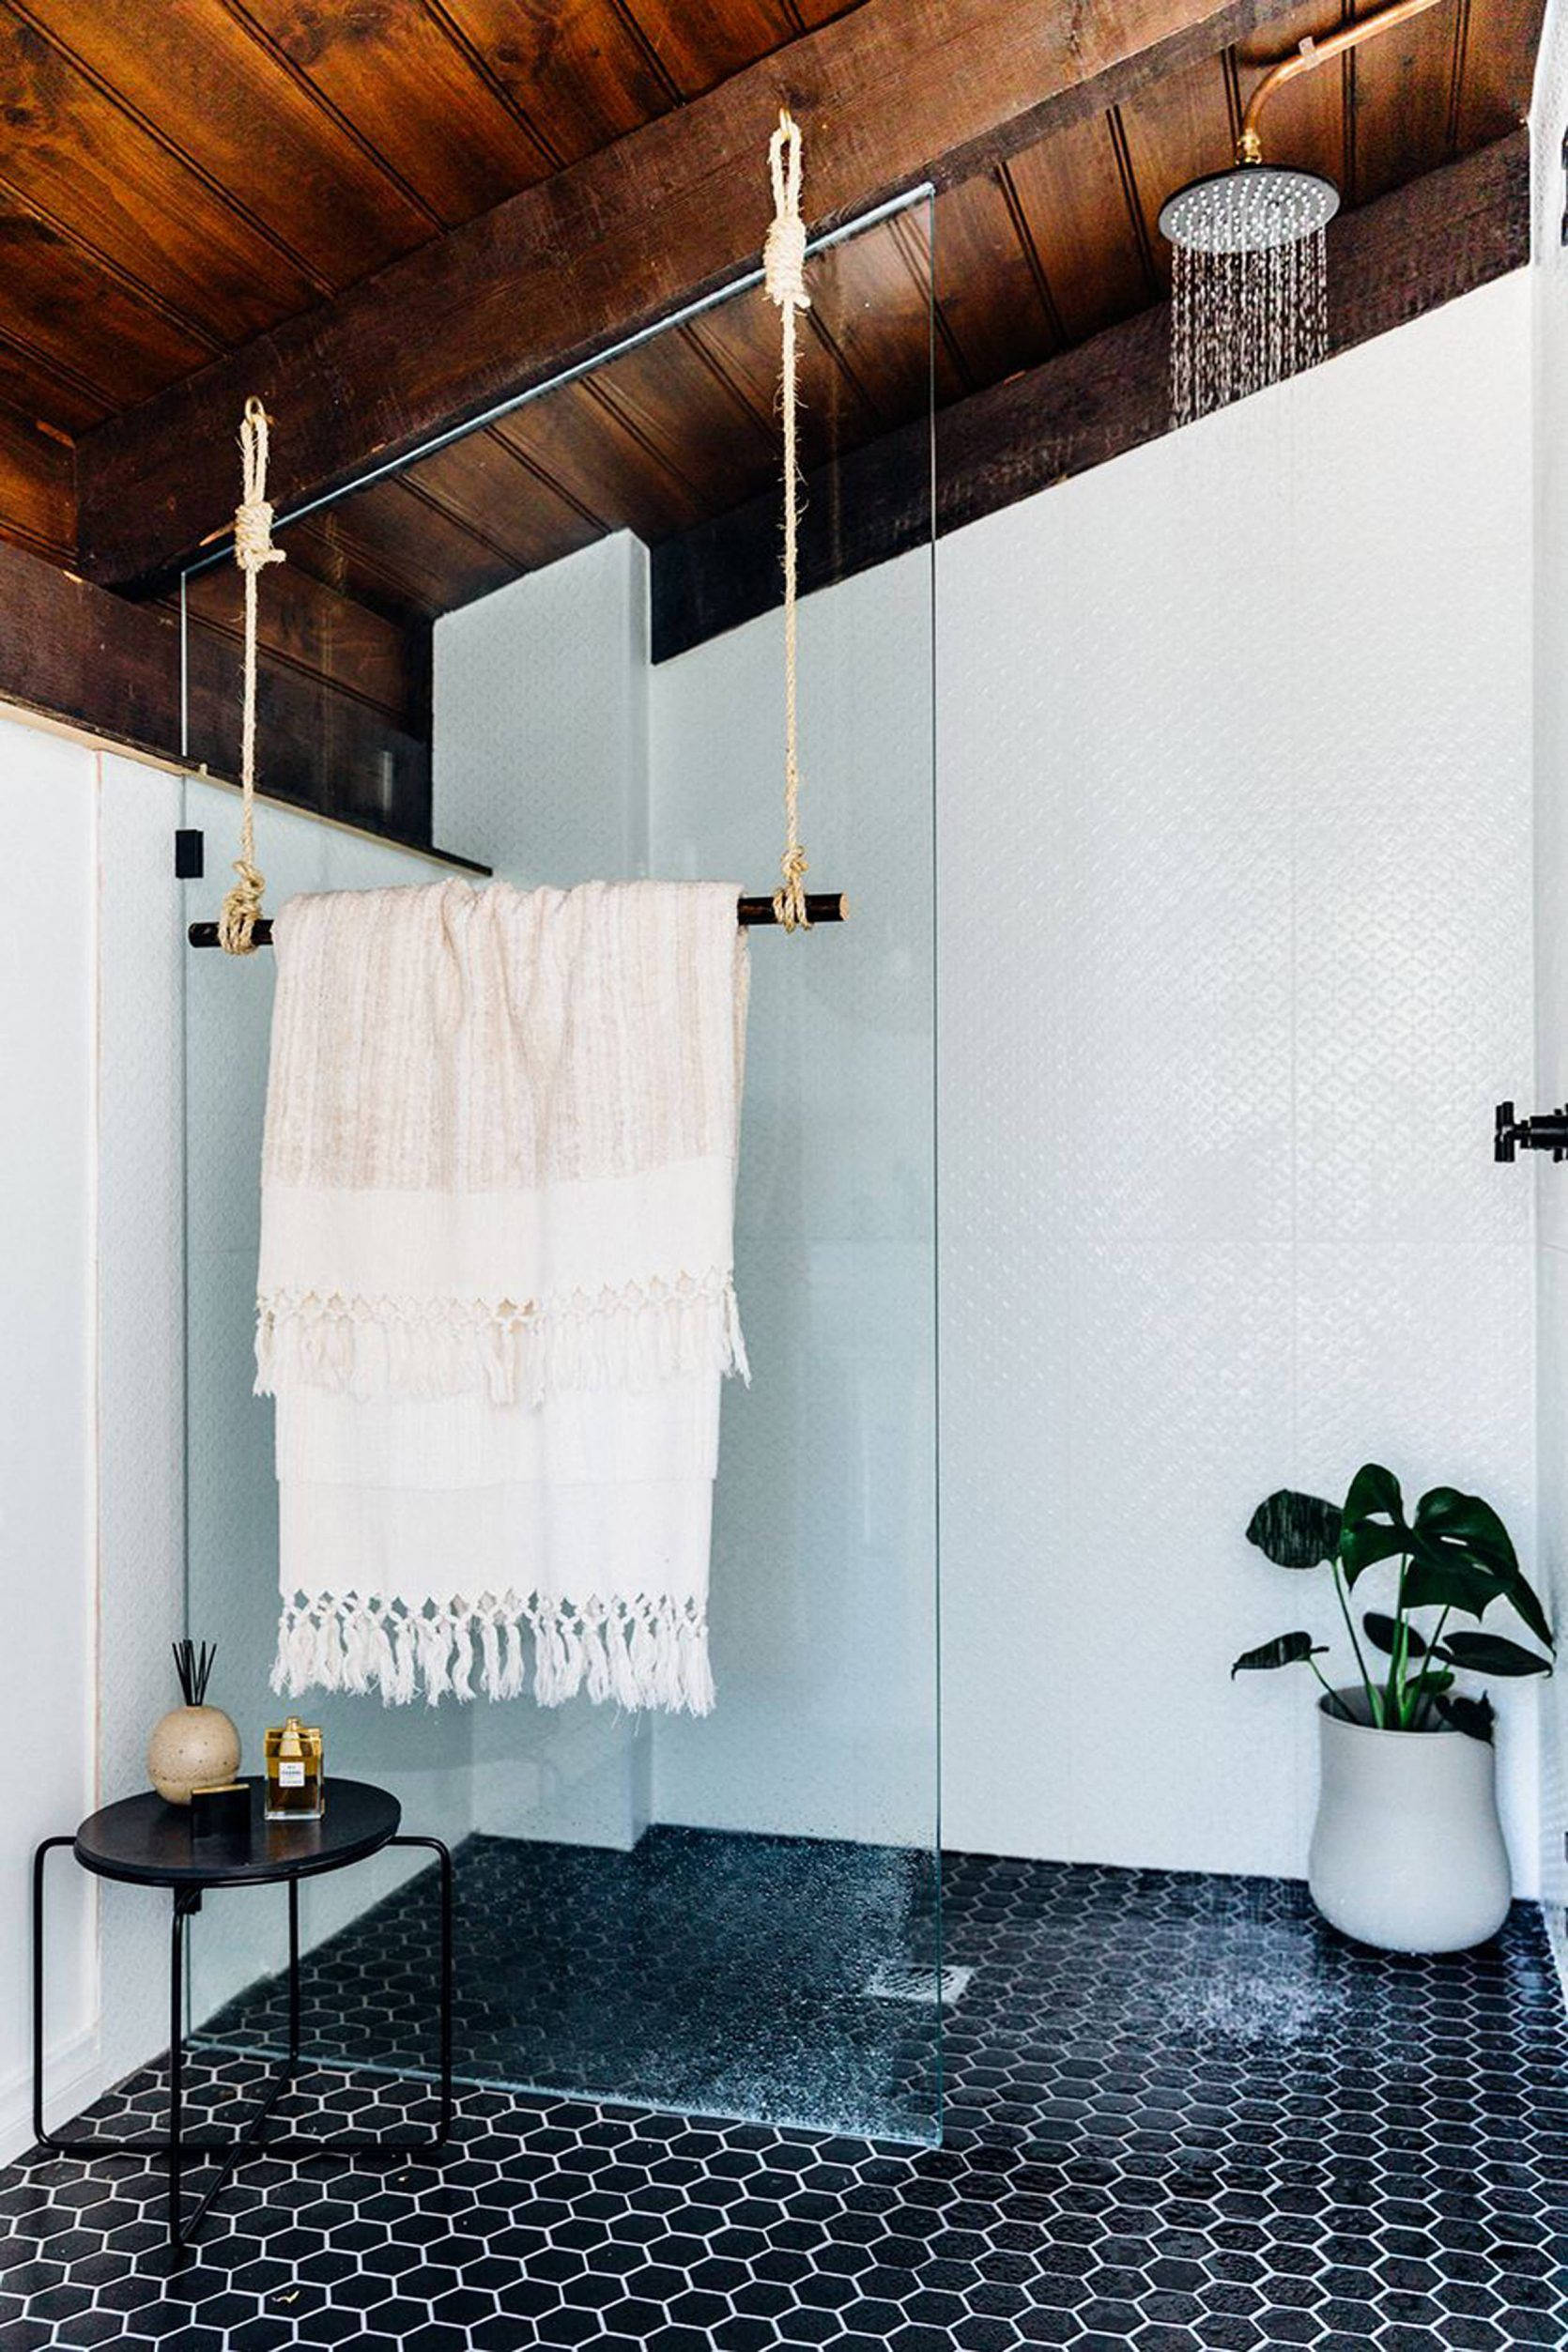 10 Of The Most Exciting Bathroom Design Trends For 2019 Bathroom Trends Bathroom Design Trends Bathroom Design